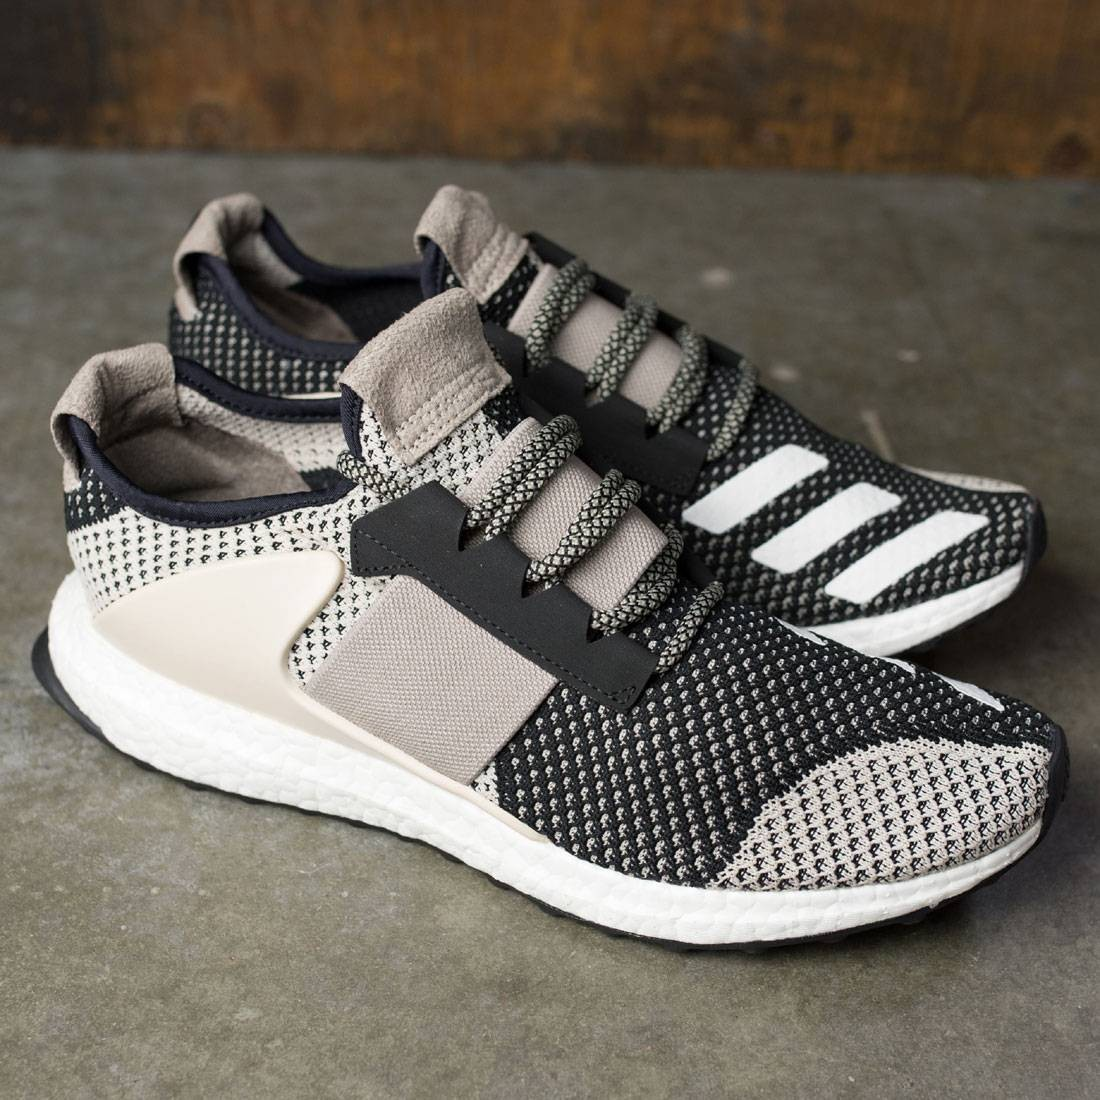 cd68442a8 Adidas Consortium Day One Men ADO UltraBoost ZG (brown   clear brown    light brown   black)